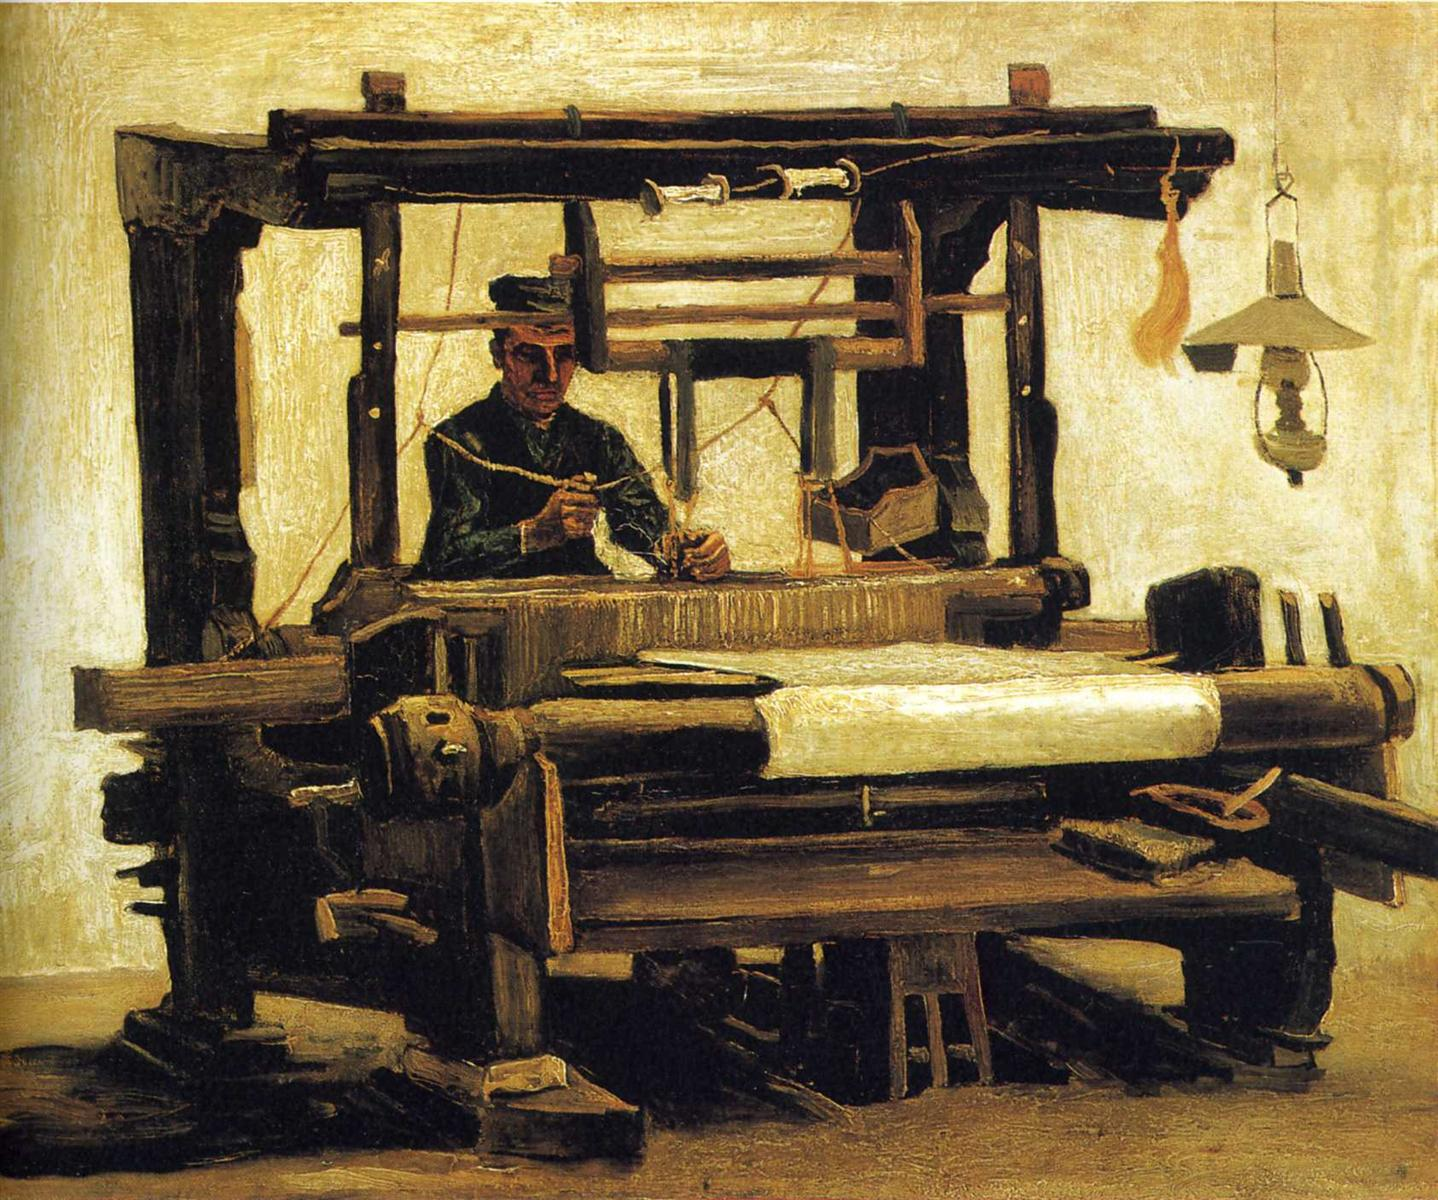 Weaver, Seen From the Front by Vincent van Gogh